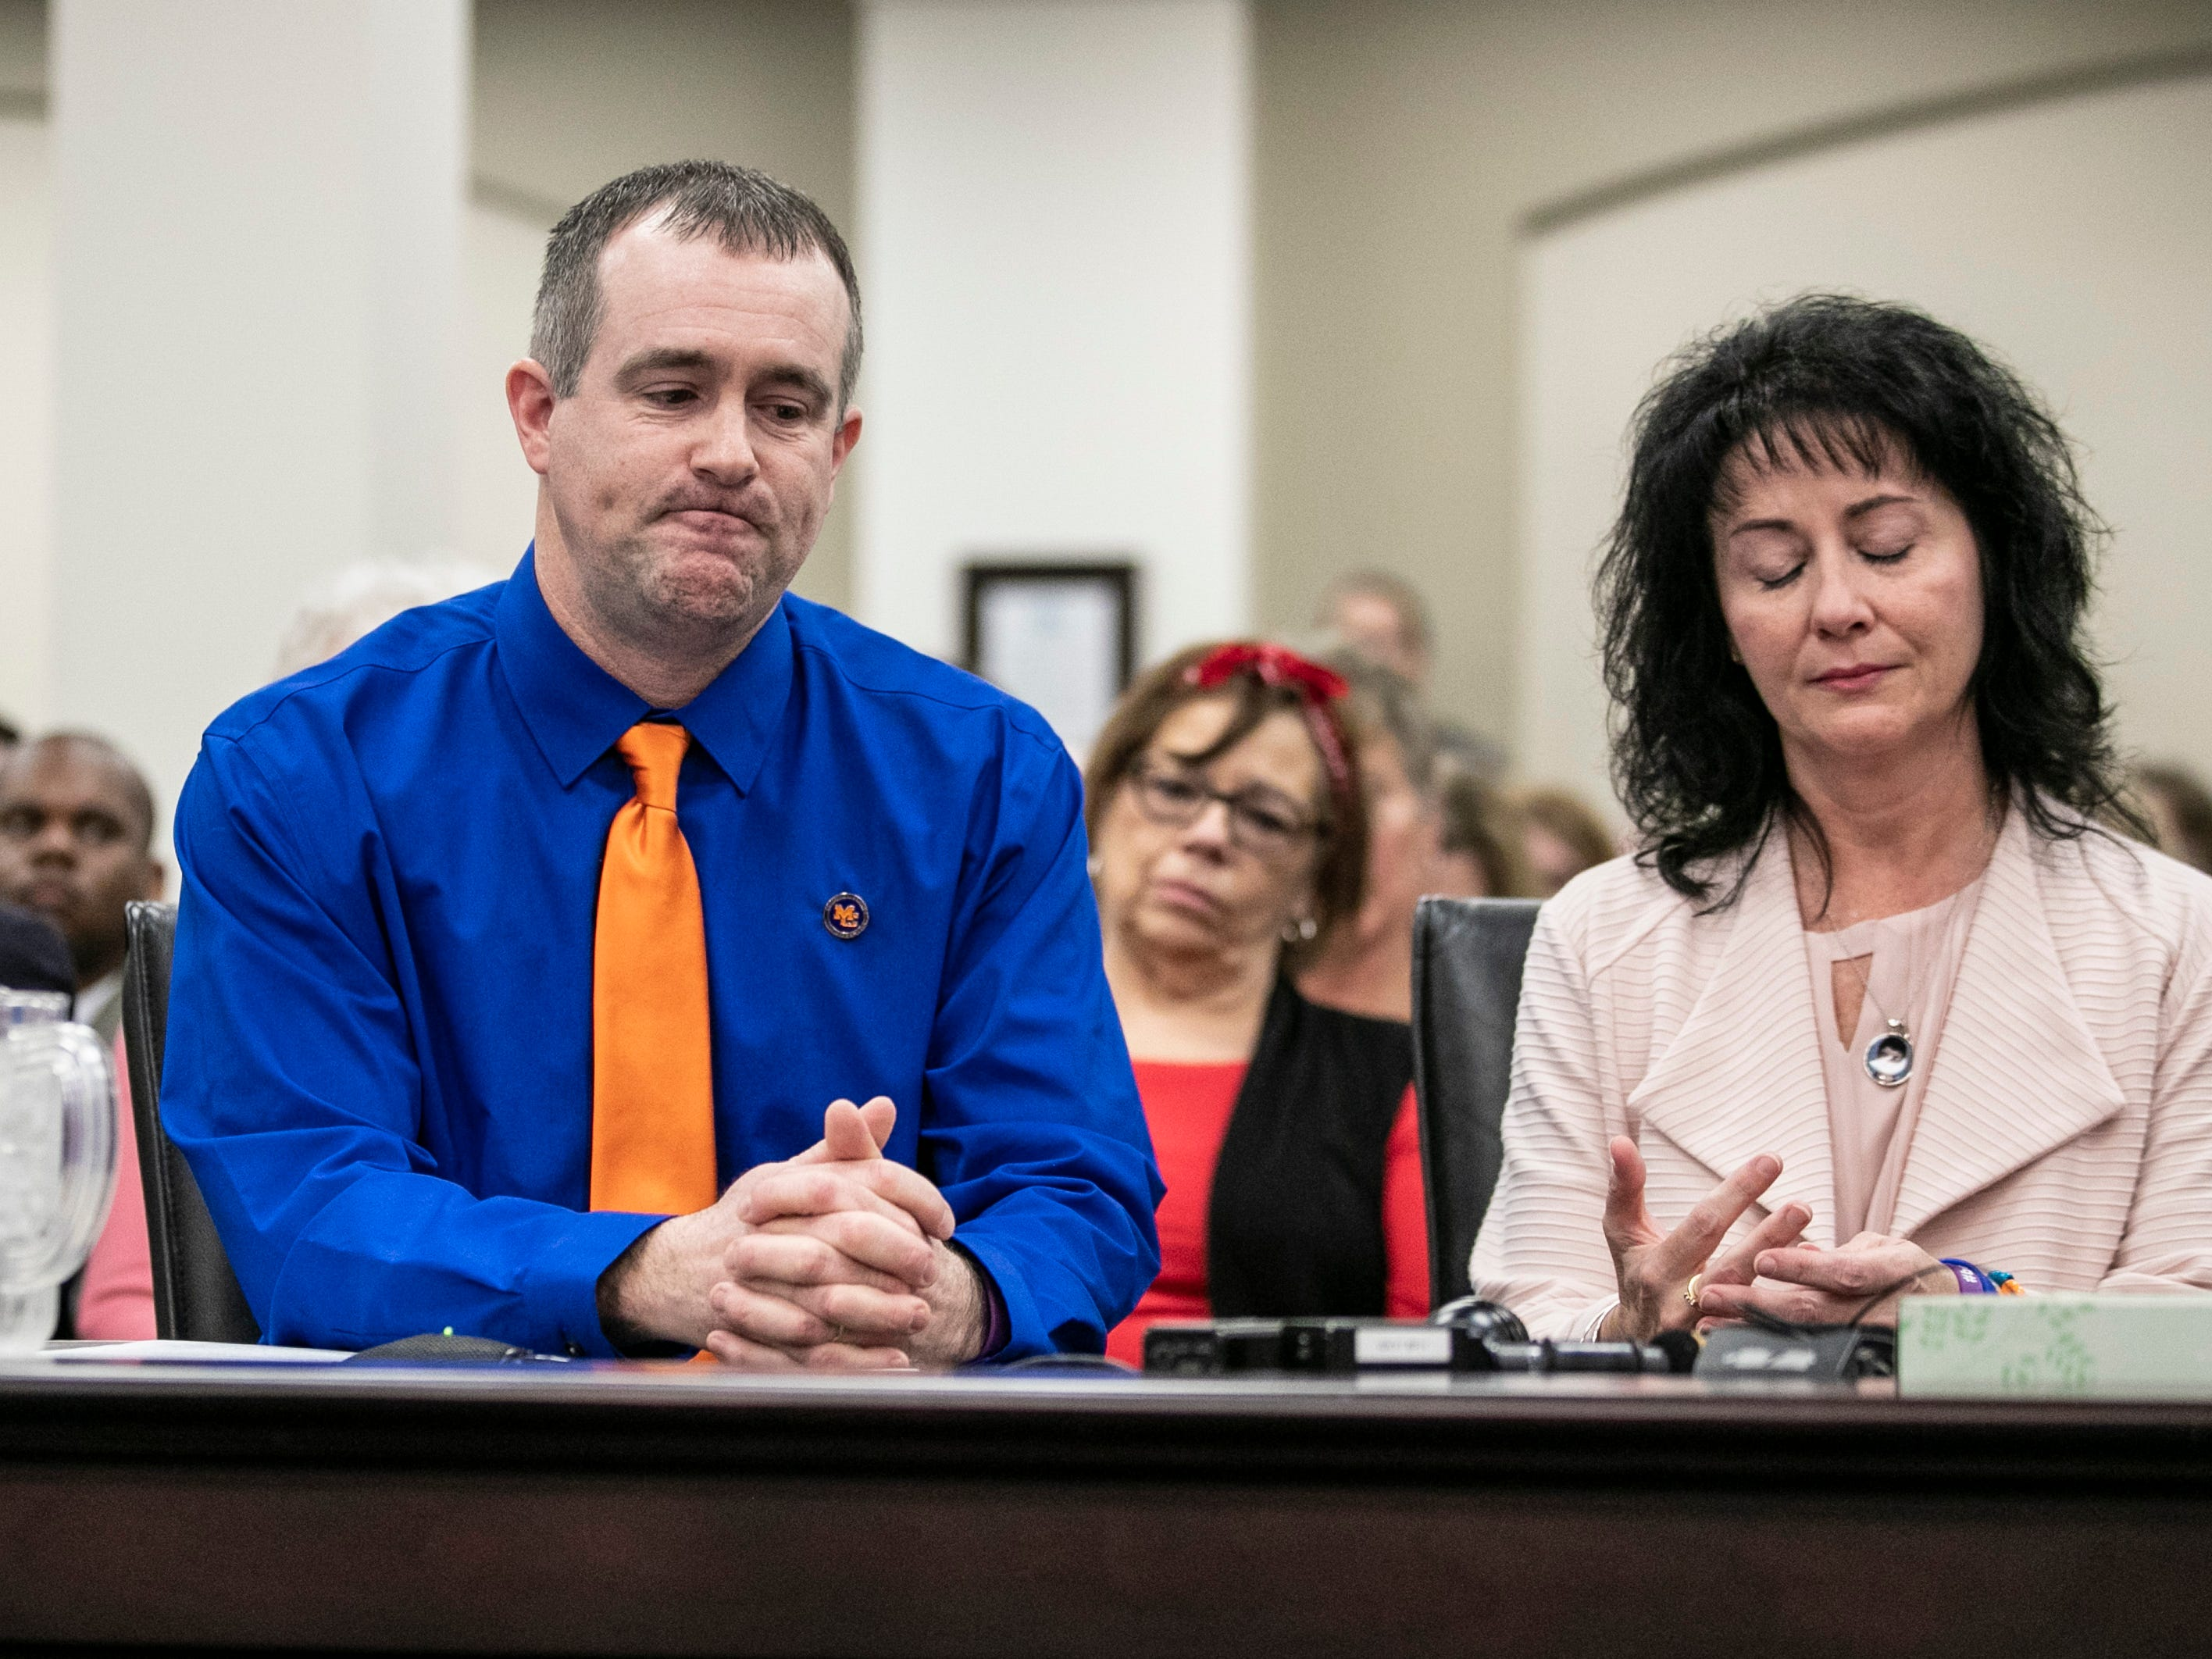 Brian Cope, with wife Theresa beside him, became emotional while speaking before lawmakers Thursday in Frankfort about the need for improved school safety. Their son Preston Cope was shot and killed during the Marshall County High School shooting in 2018. Bailey Holt was also killed. Feb. 7, 2019